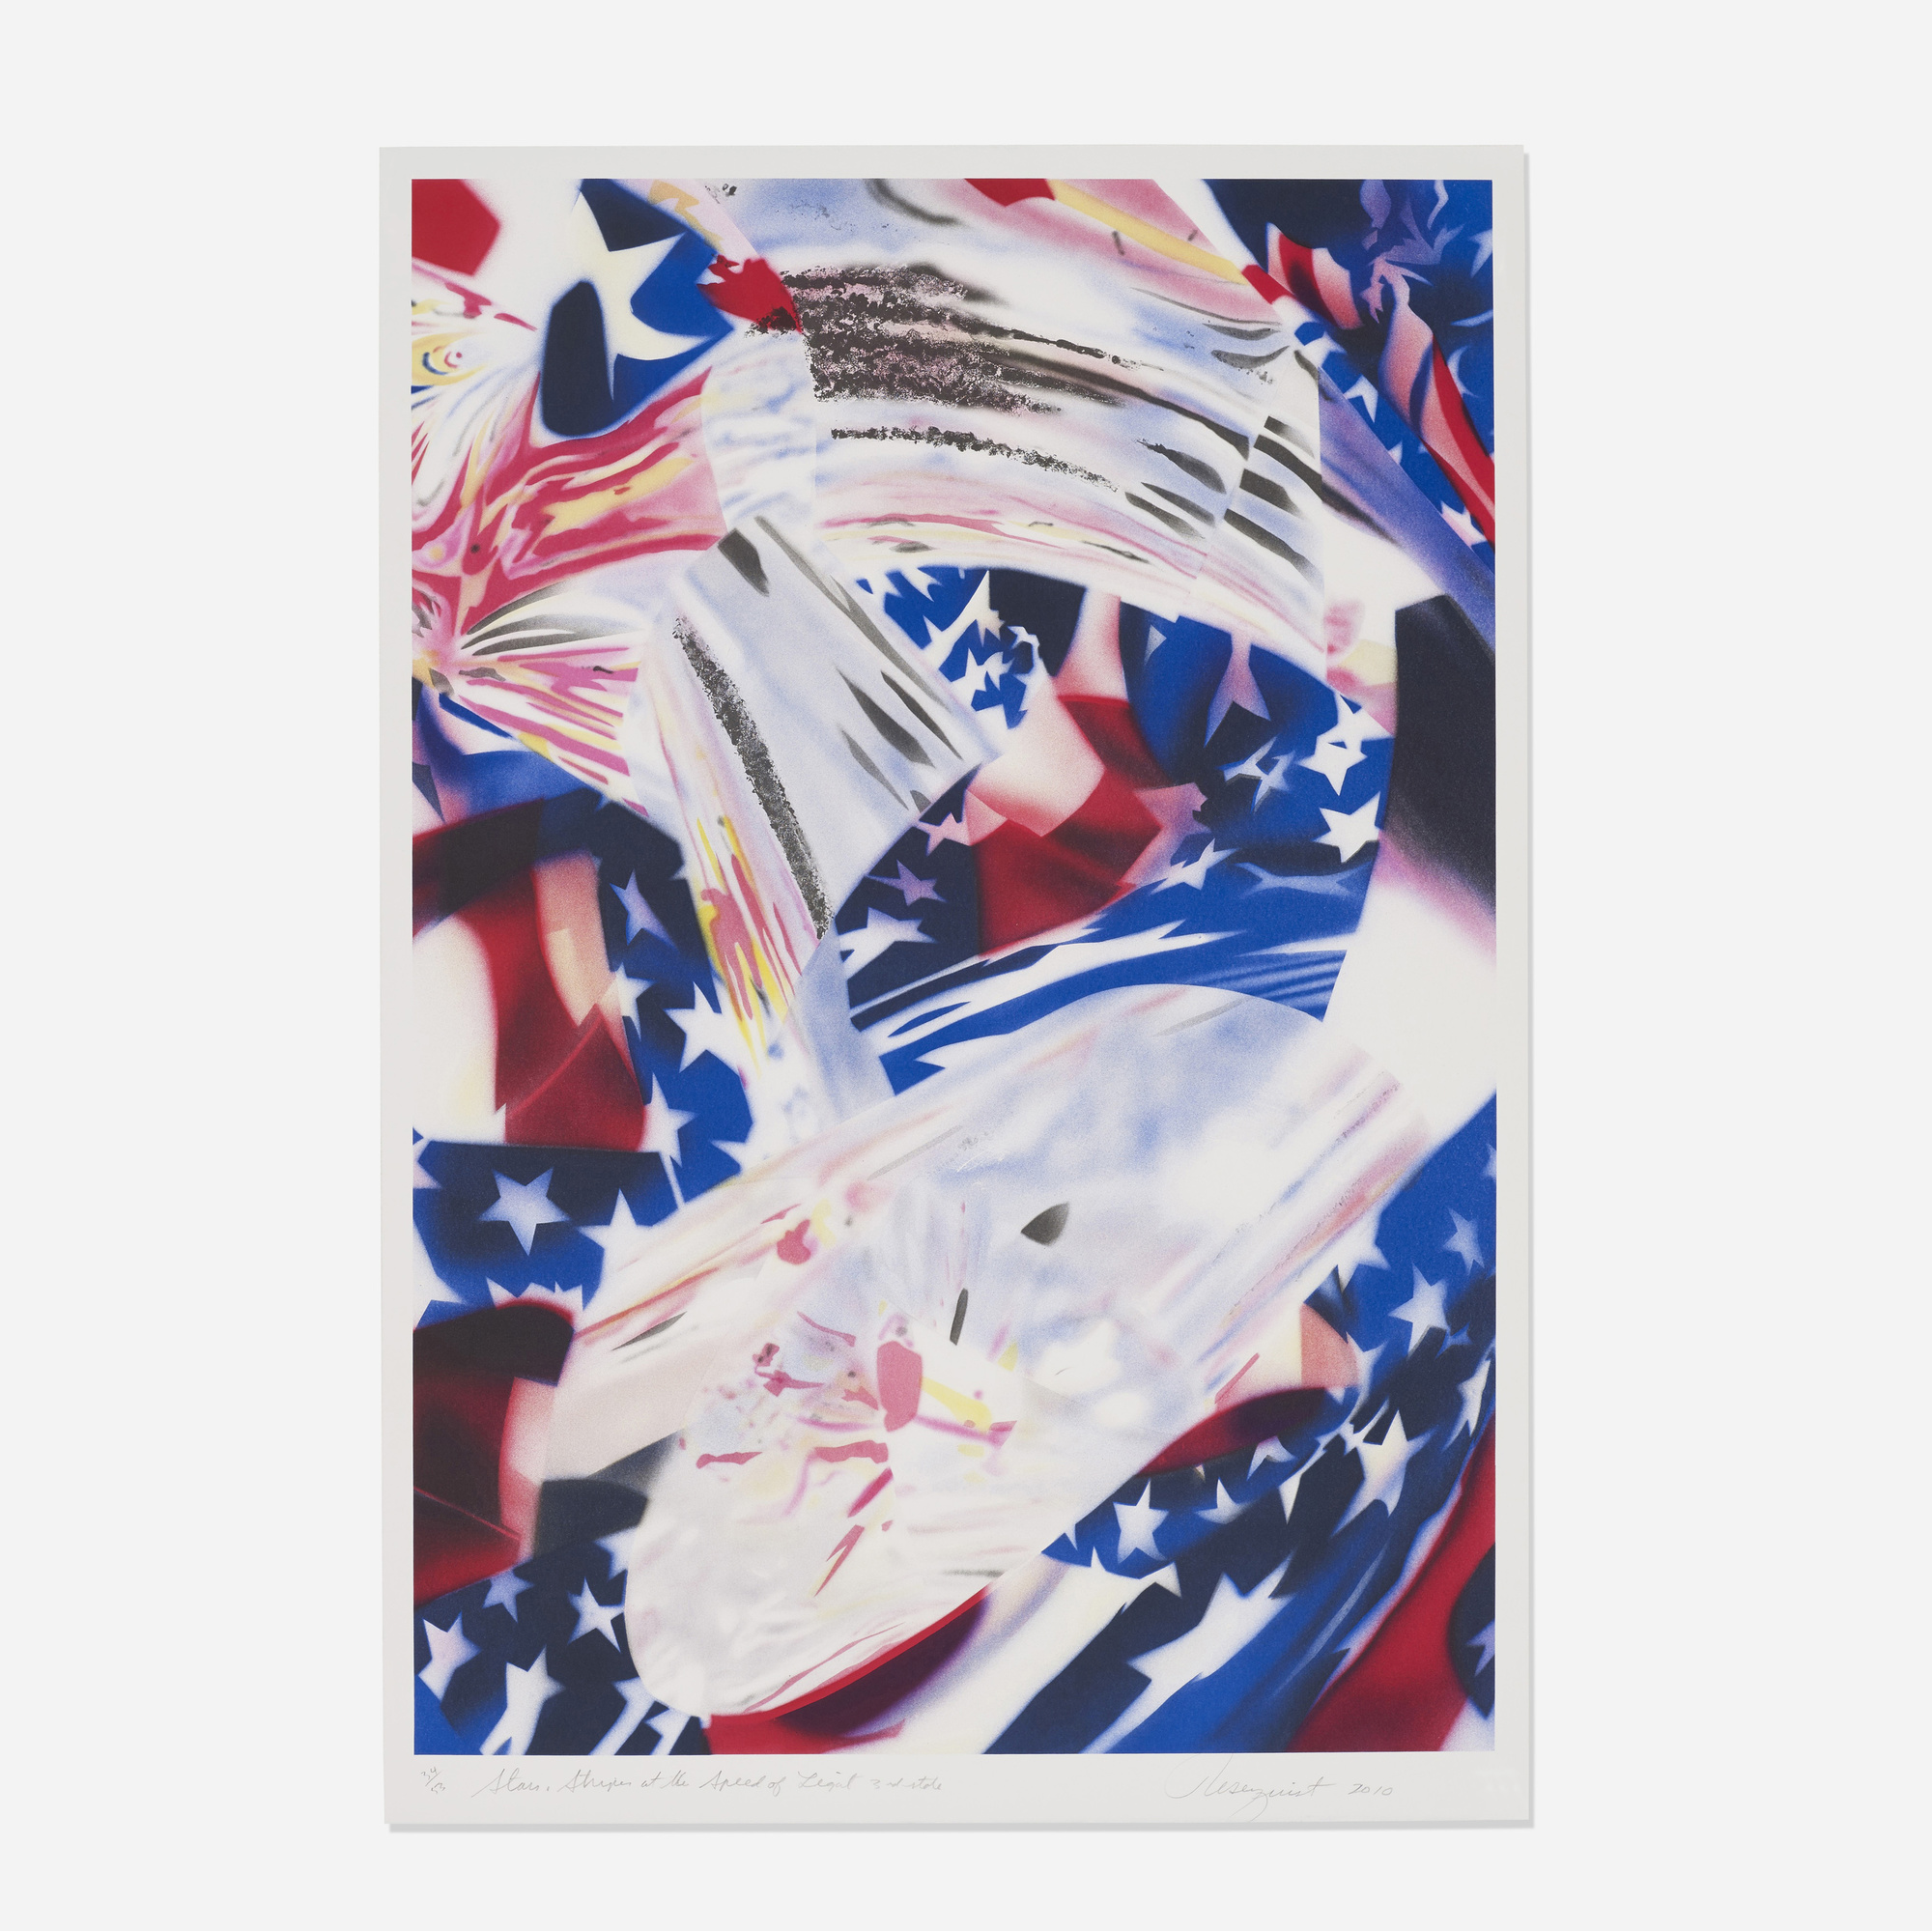 168: James Rosenquist / Stars and Stripes at the Speed of Light (1 of 3)